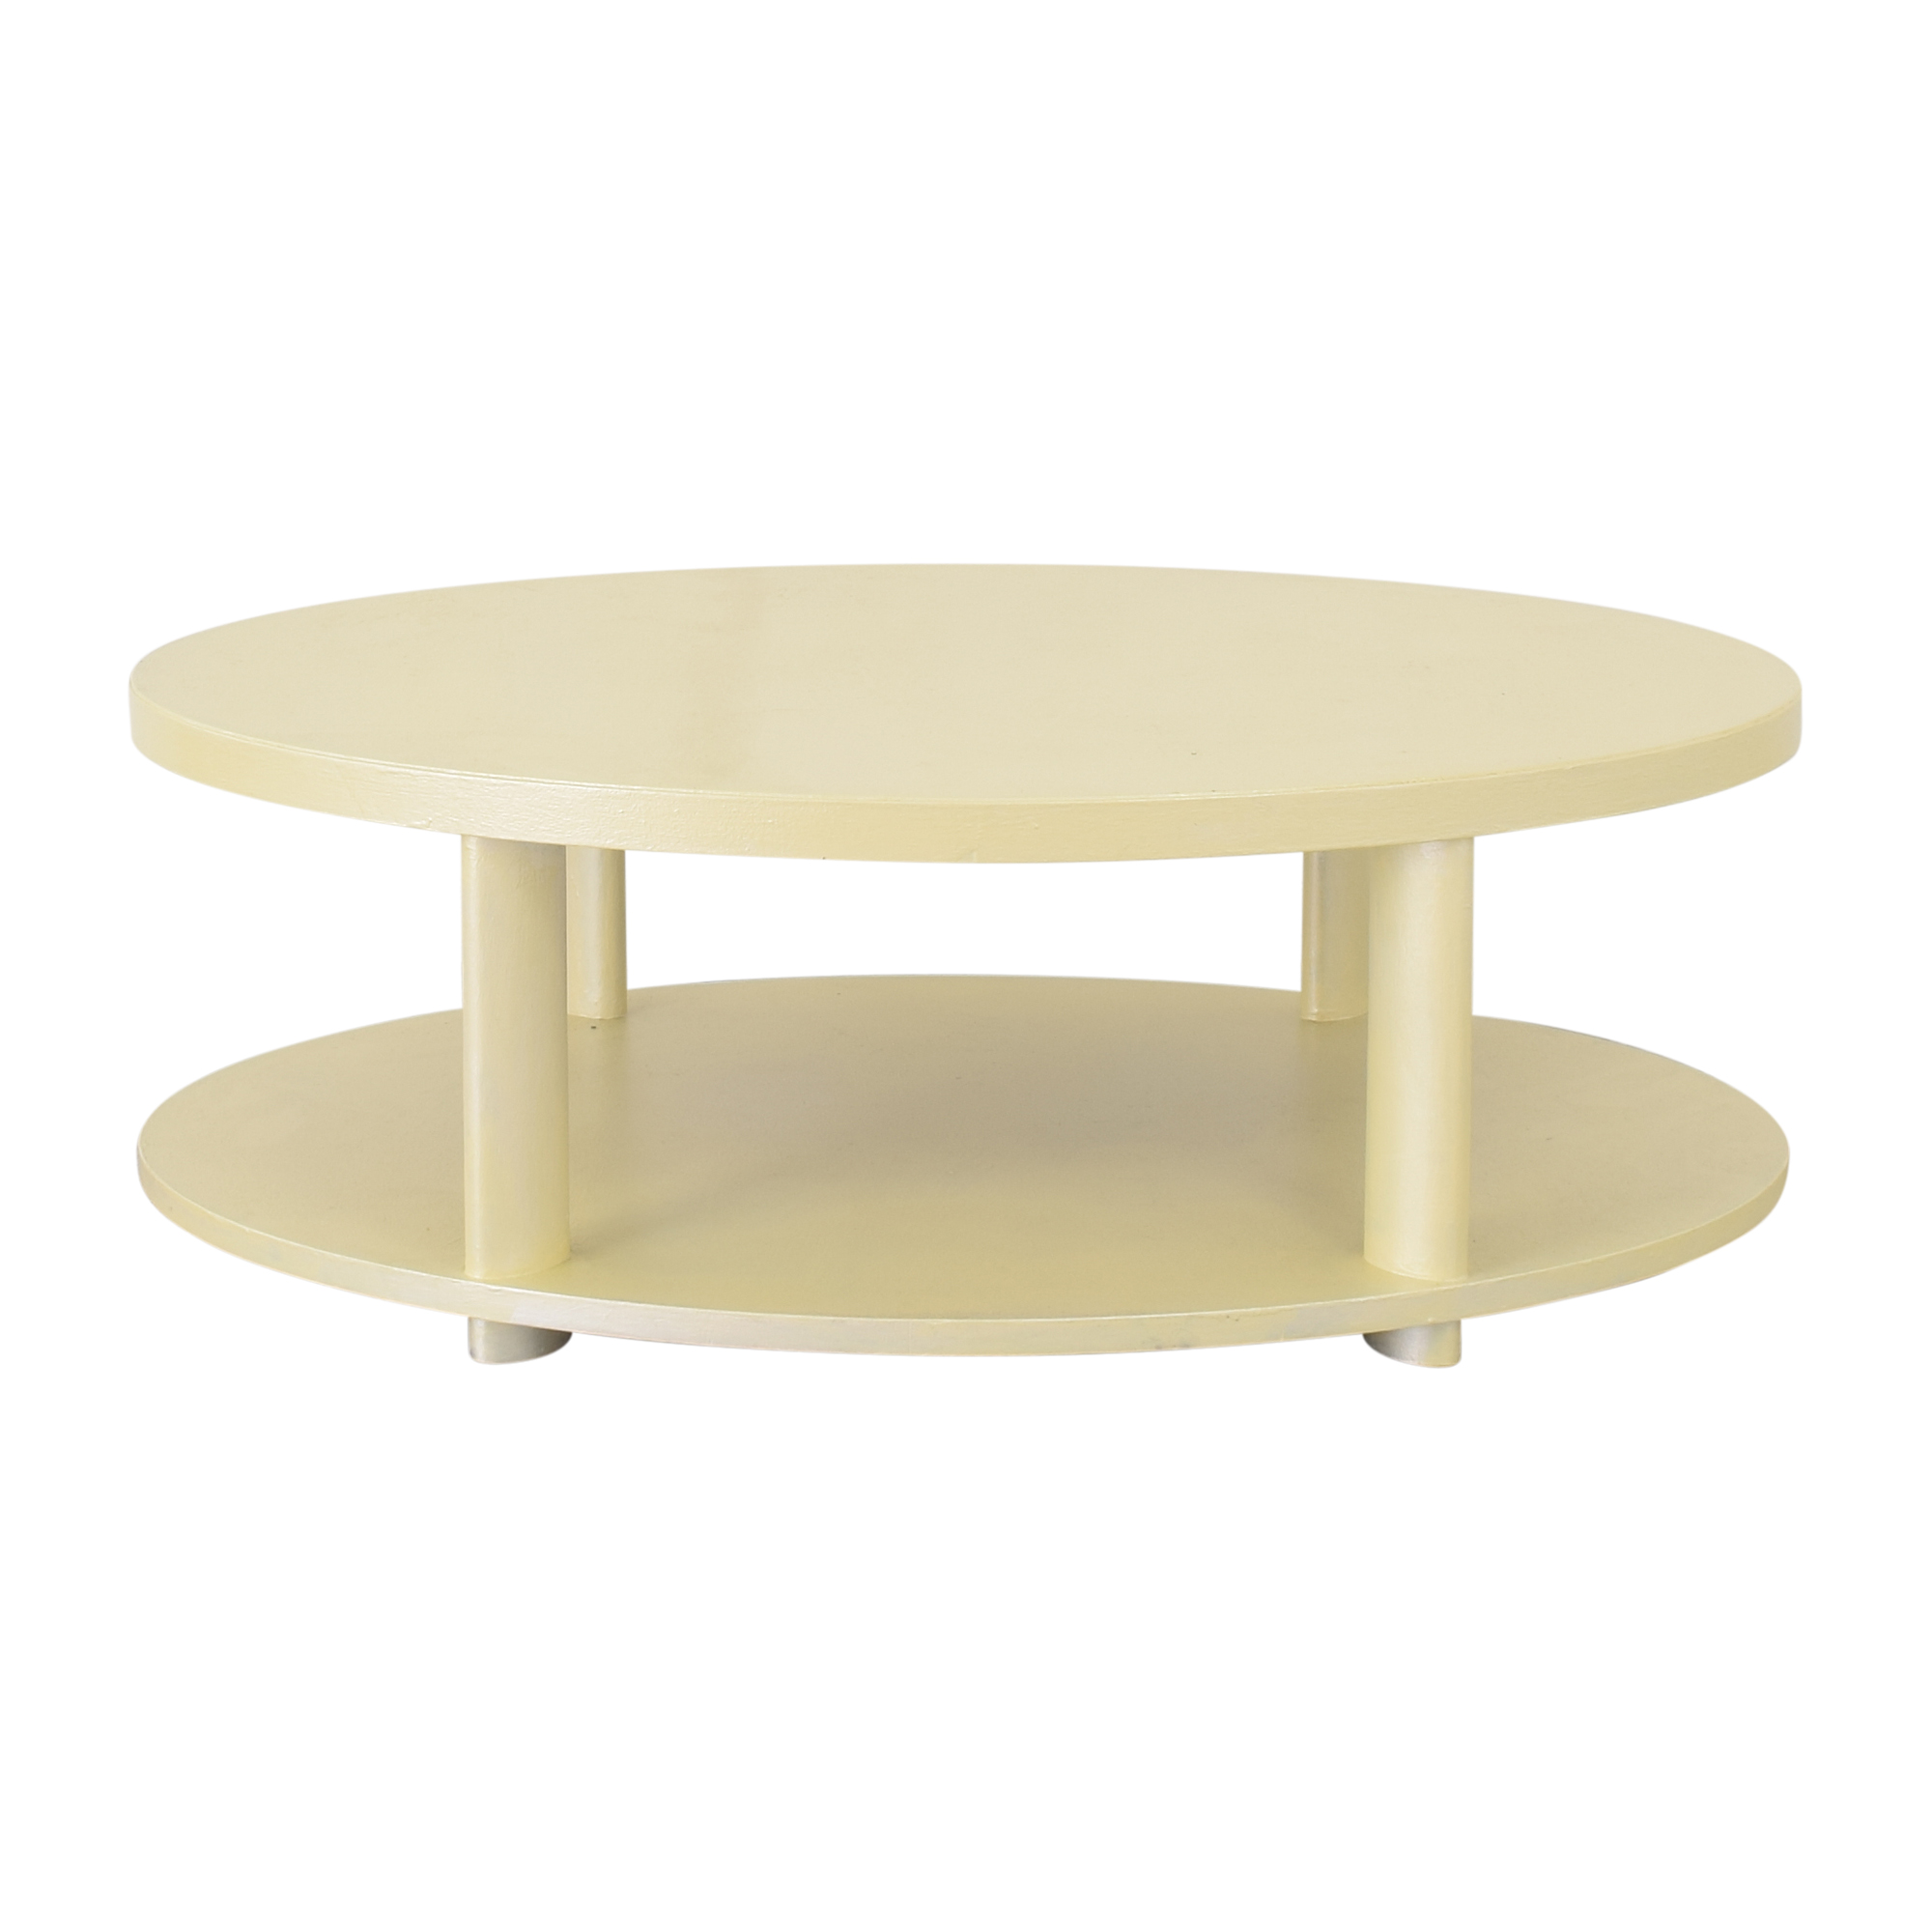 Baker Furniture Barbara Barry for Baker Oval Tiered Coffee Table ct